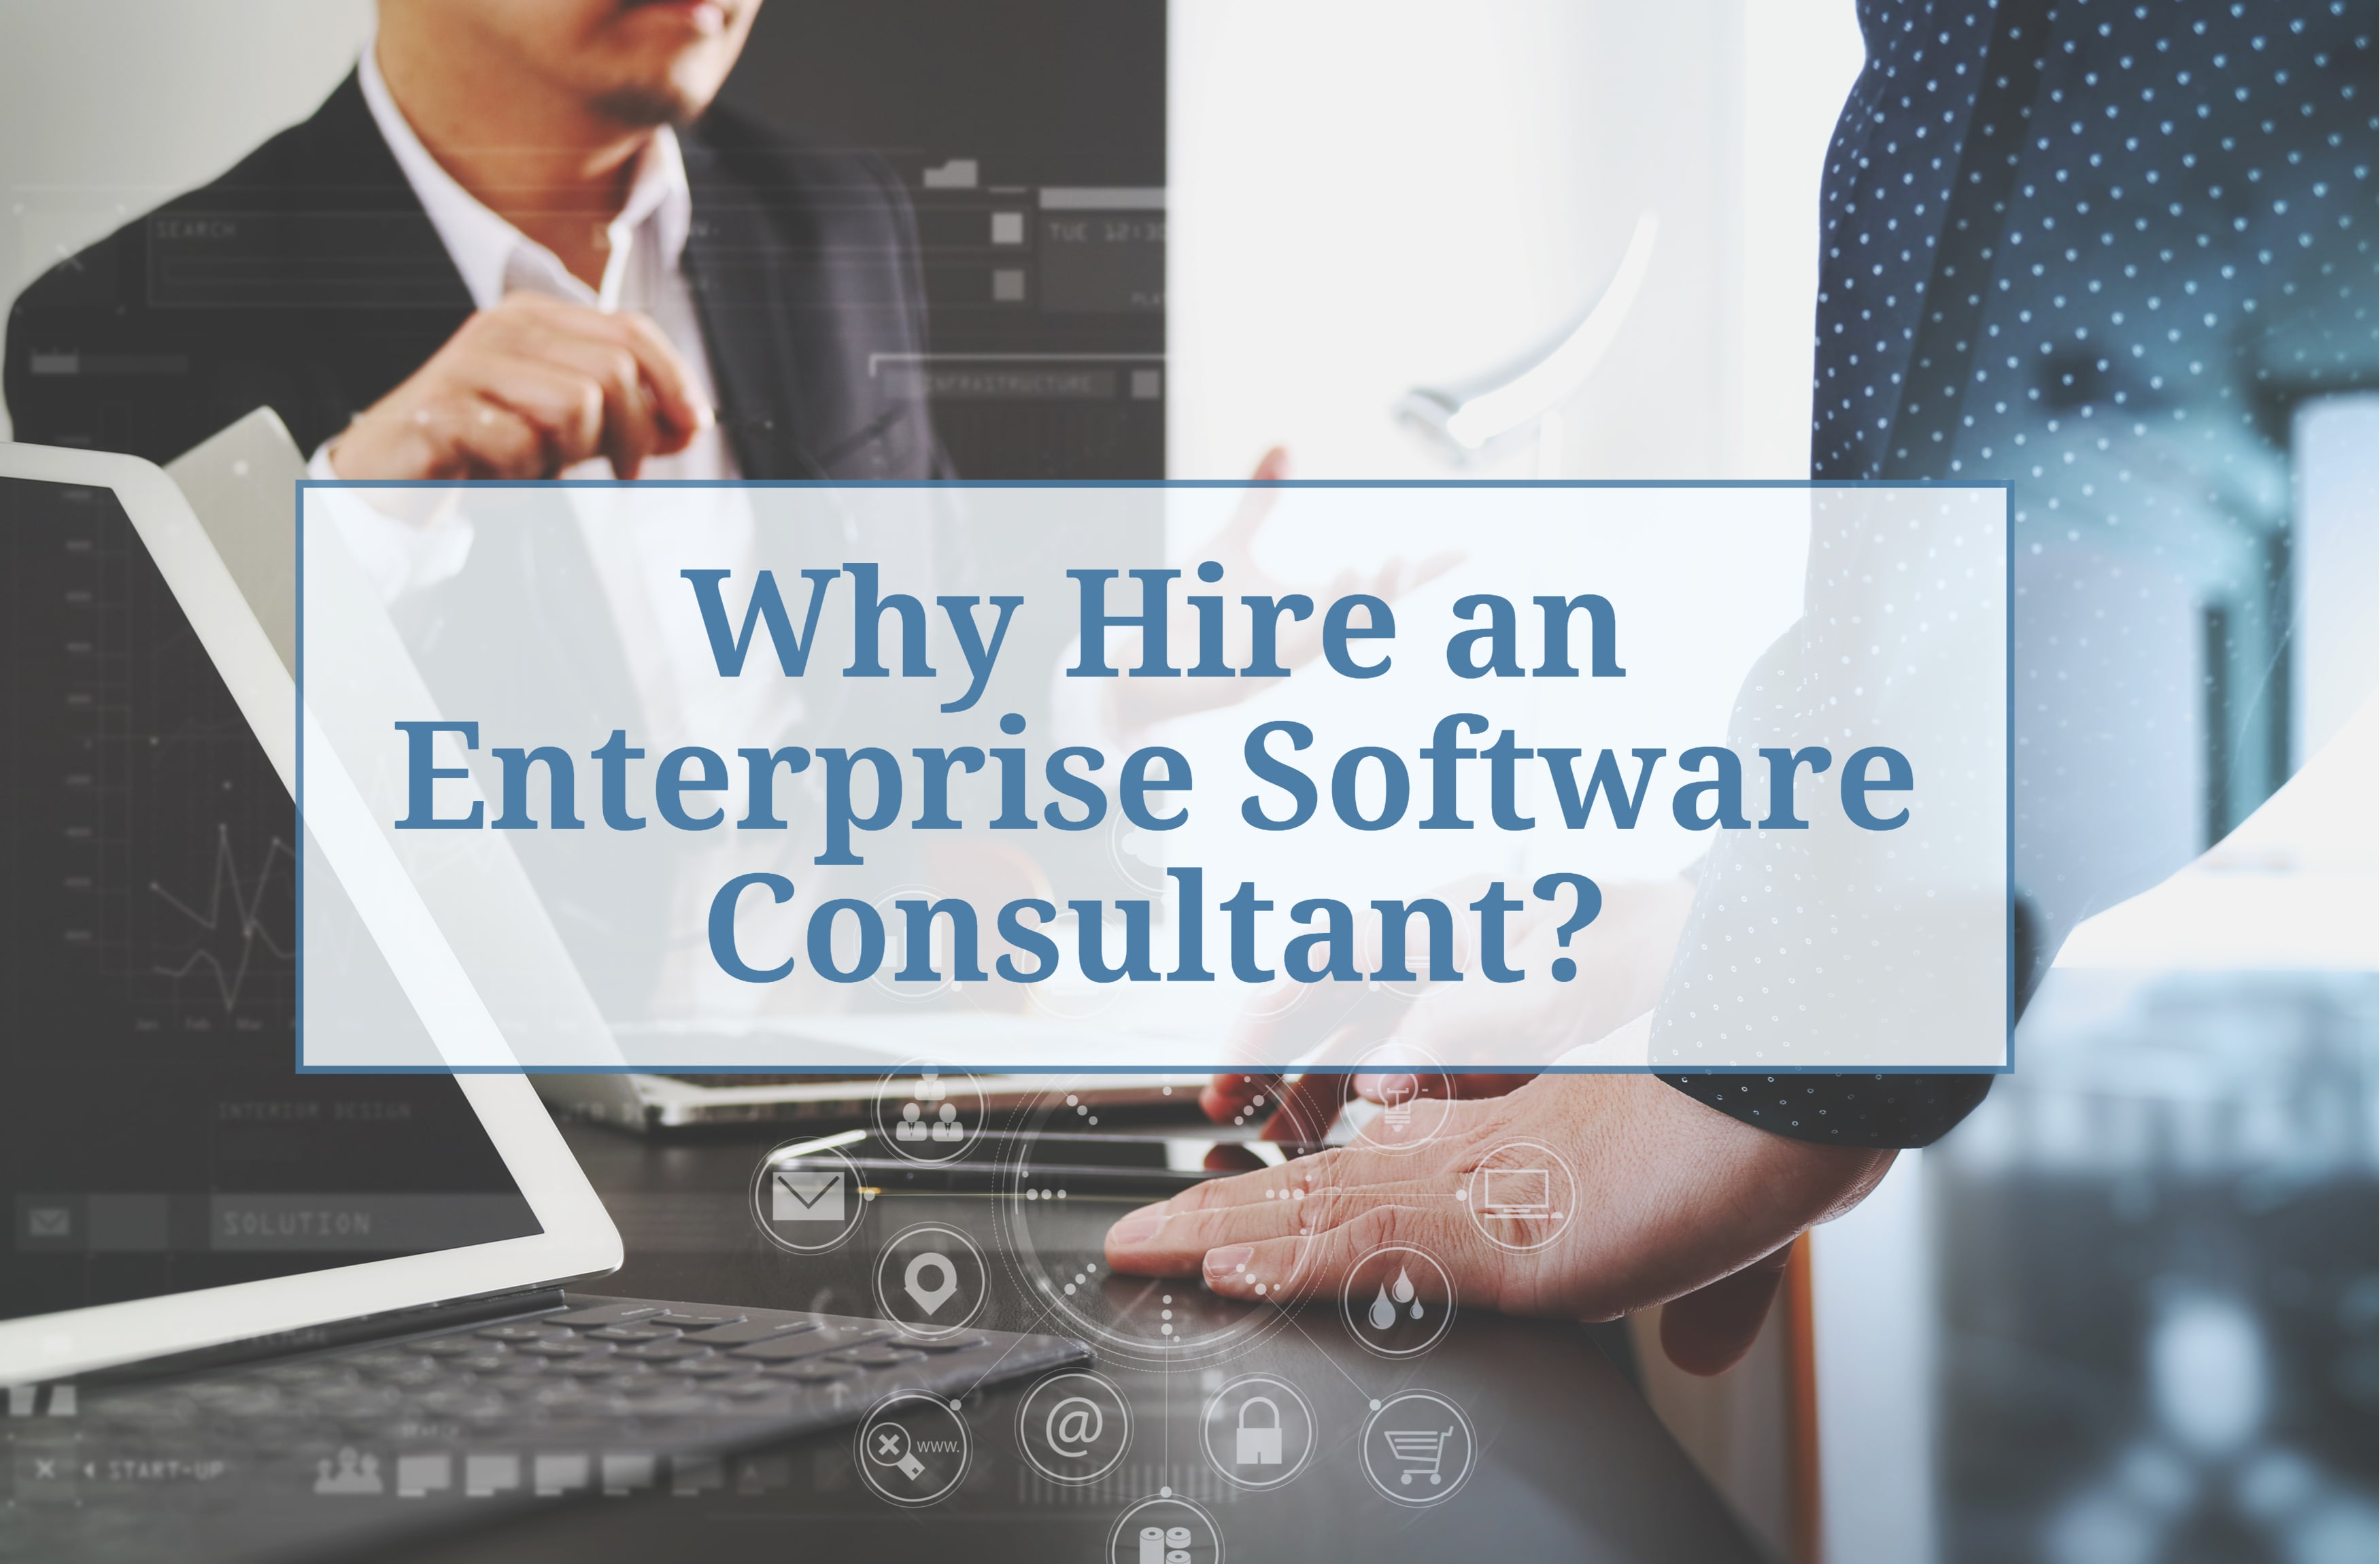 Why Hire an Enterprise Software Consultant?